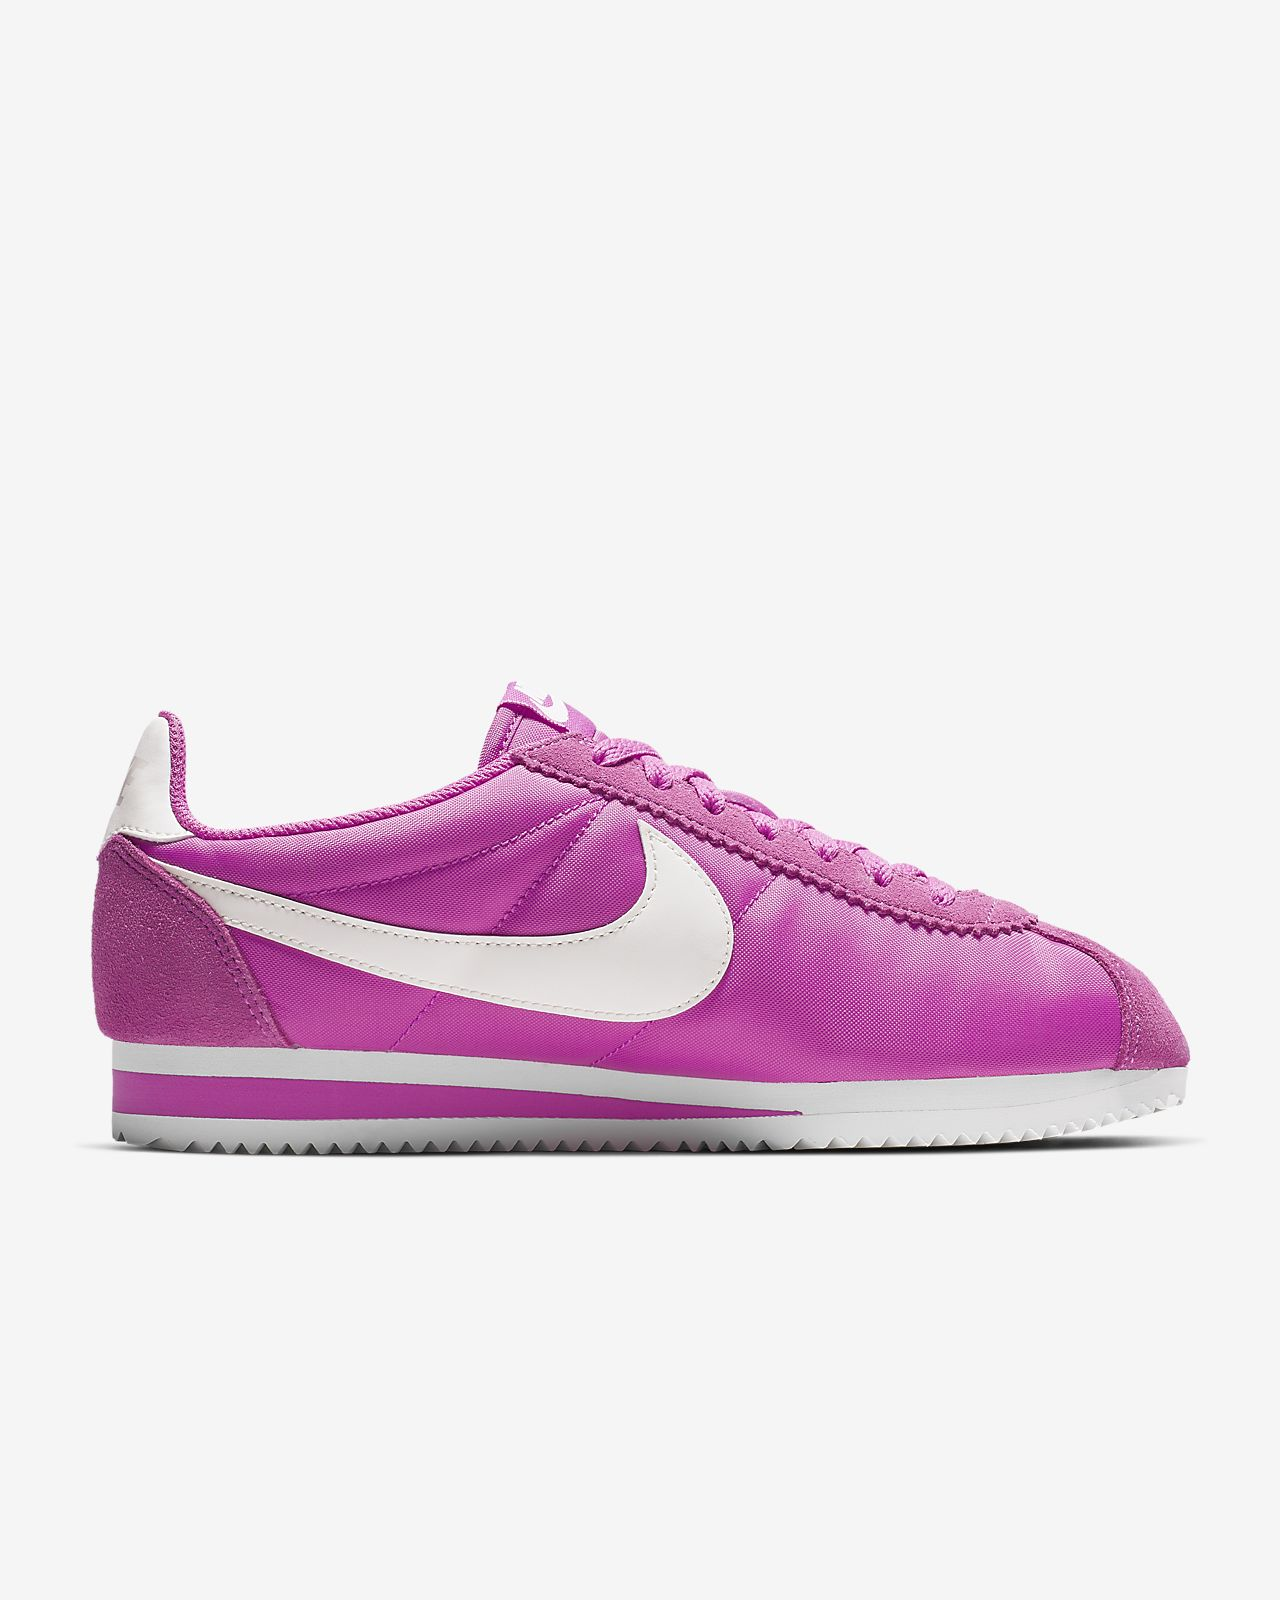 newest f7455 c8d99 ... Nike Classic Cortez Nylon Women s Shoe